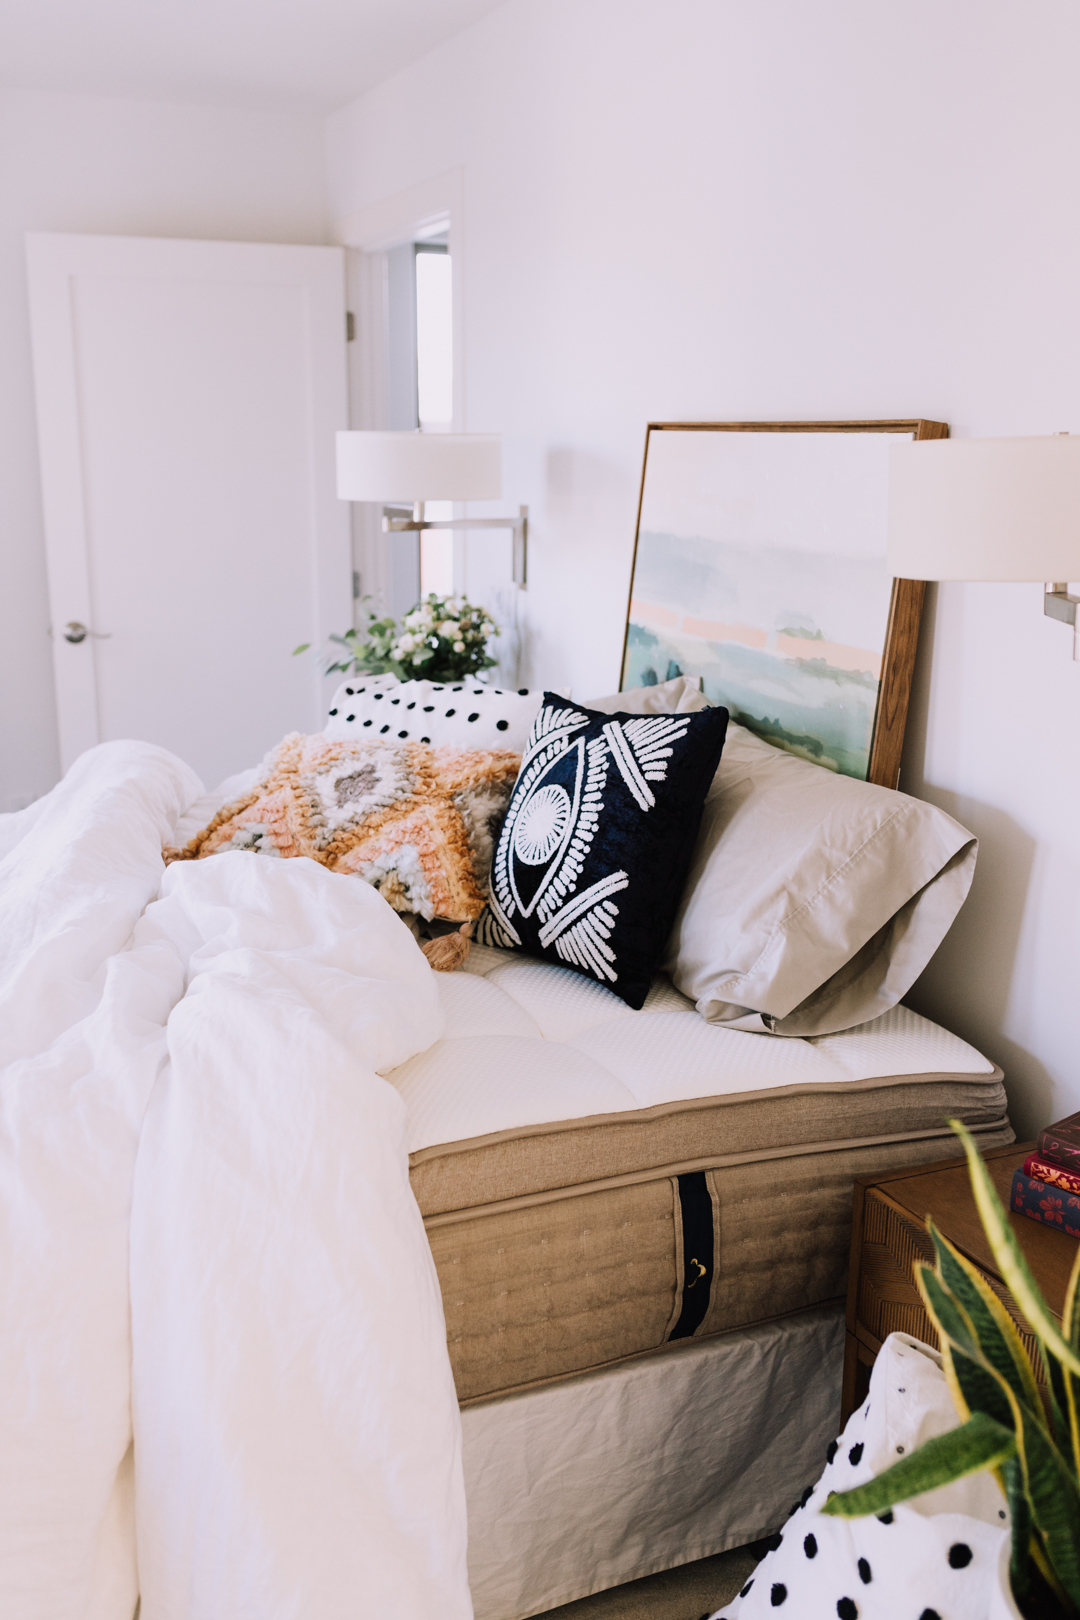 talking about bedtime rituals with dreamcloud mattress | thelovedesignedlife.com #mydreamcloud #softestmattress #bedroomstyle